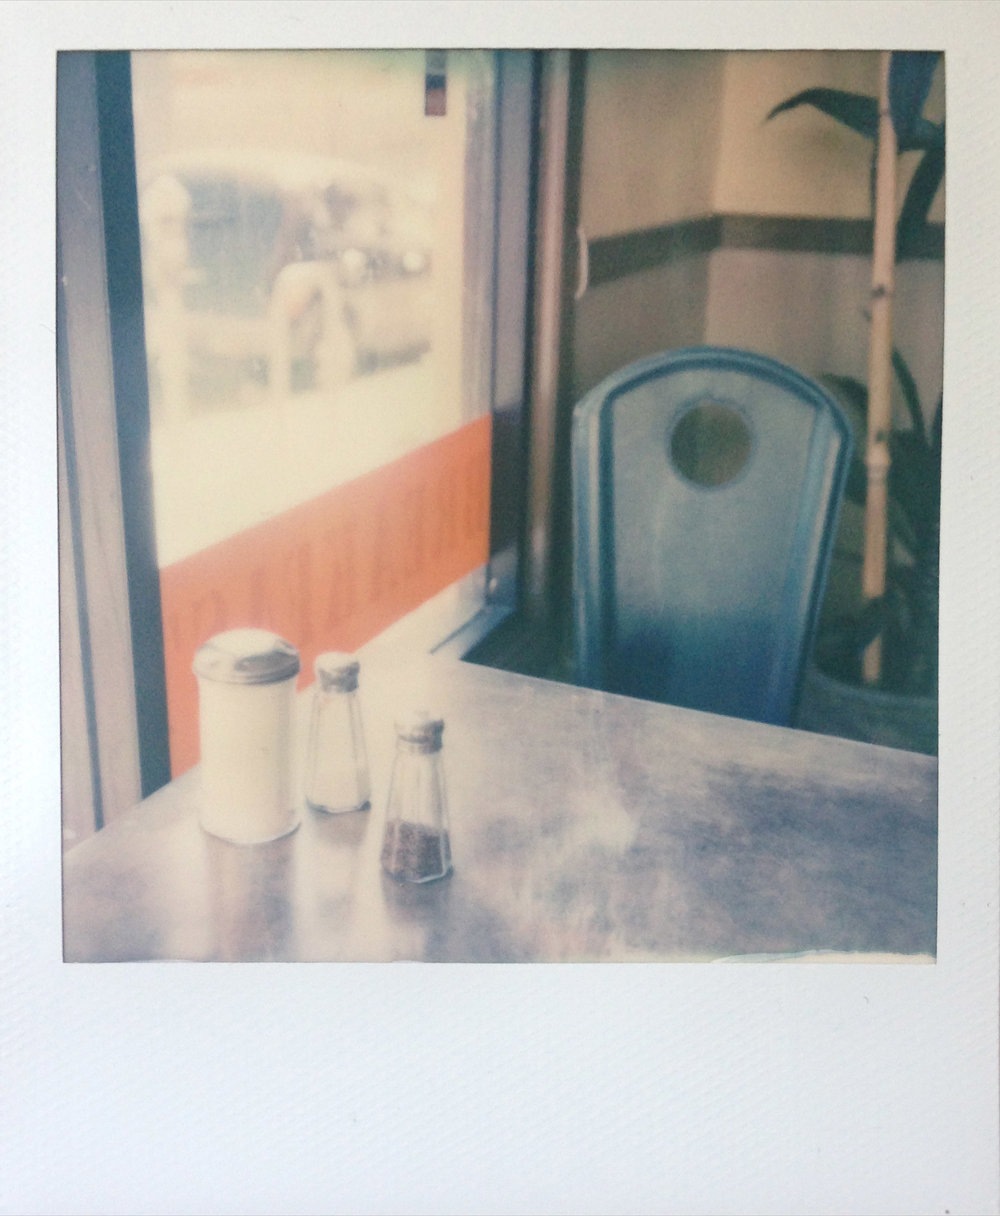 A 365 project shot on polaroid film with an SX-70 camera.